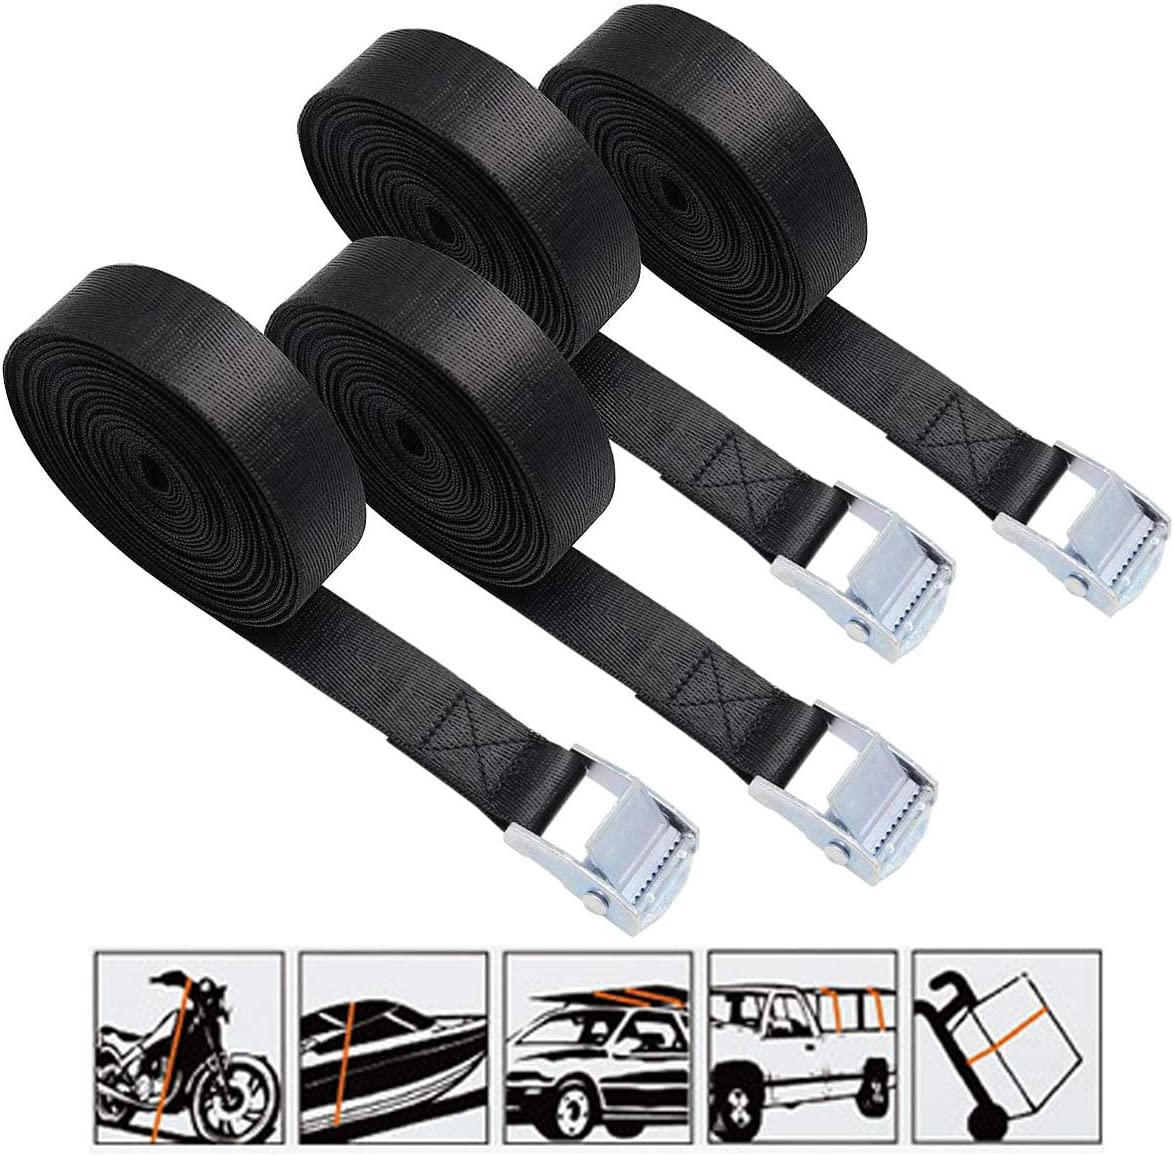 13 Feet 25mm Nylon Lashing Straps Car Roof Rack Straps with Quick Release Buckle for Surfboard Trailer and Luggage Cargo Black 2 Pack Lashing Straps Kayak Trucks Motorcycle